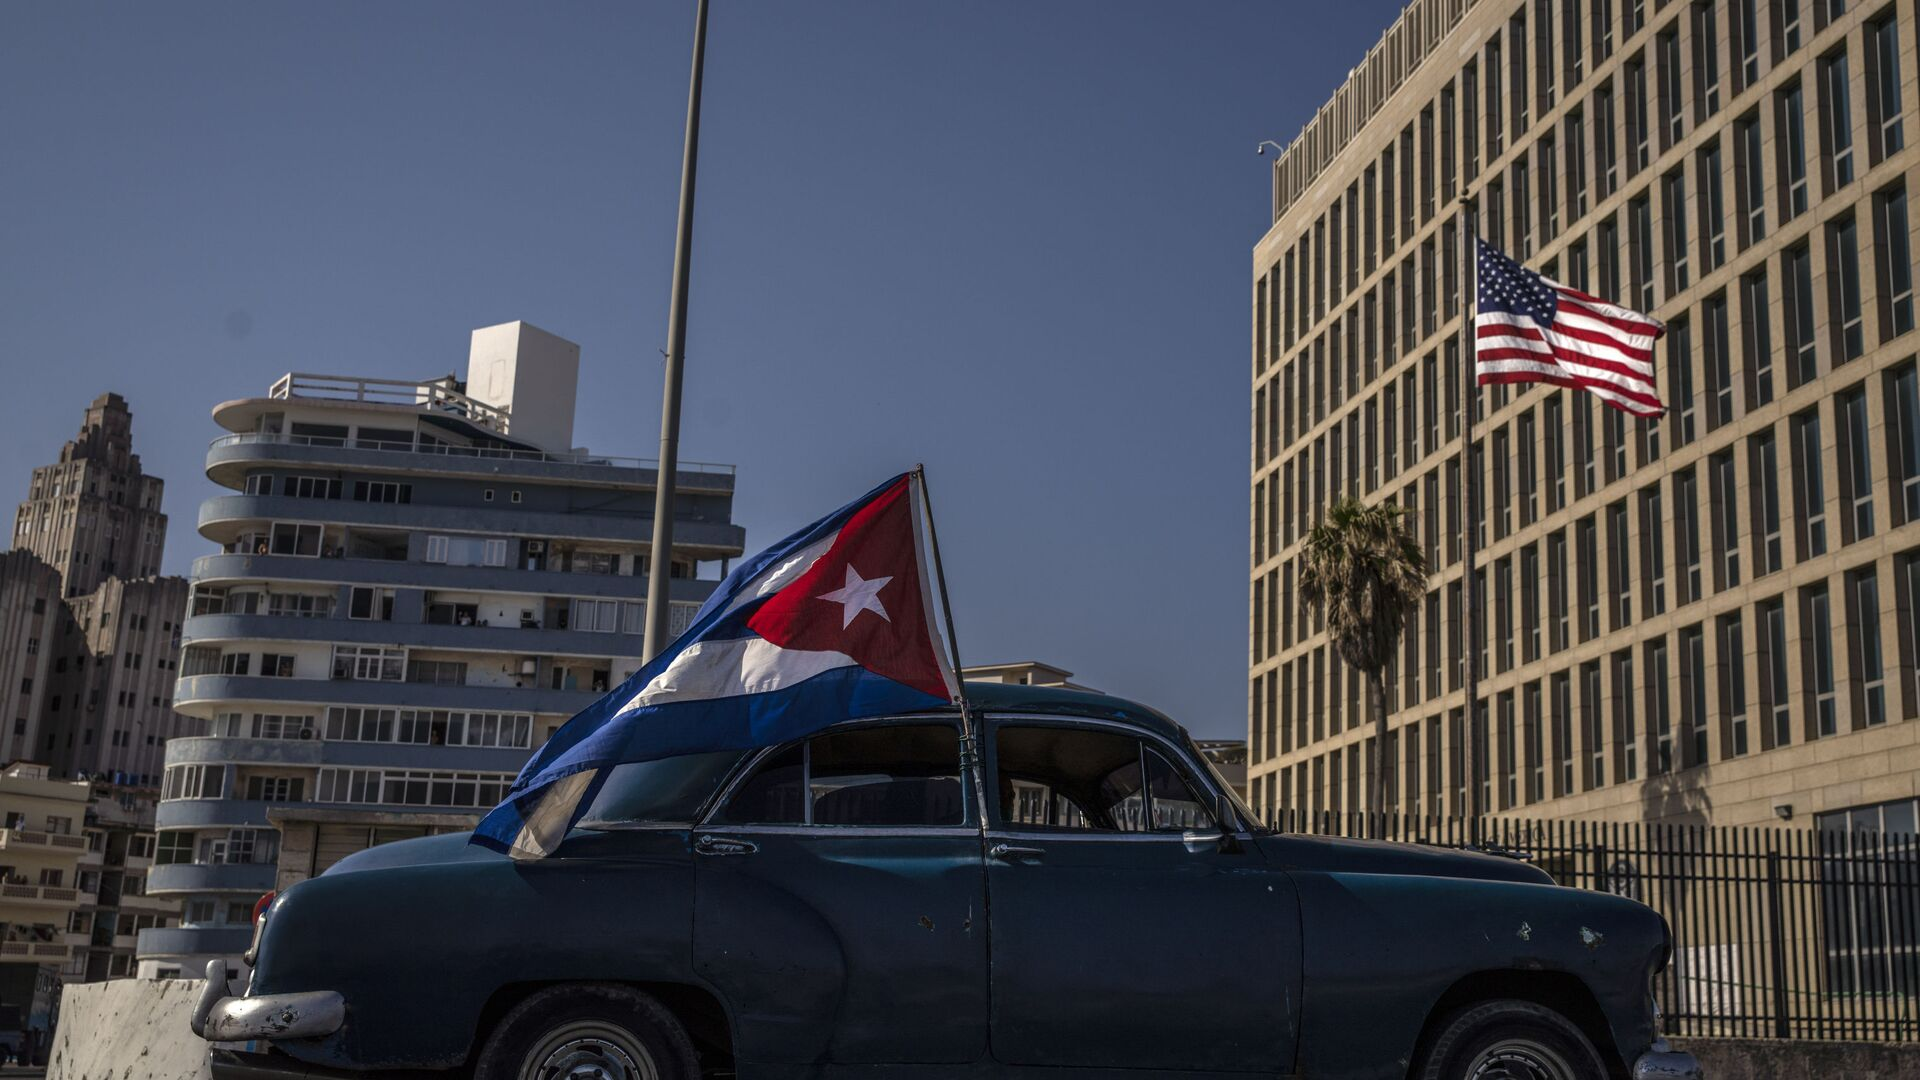 A classic American car flying a Cuban flag drives past the American embassy during a rally calling for the end of the US blockade against the island nation, in Havana, Cuba, Sunday, March 28, 2021. - Sputnik International, 1920, 14.09.2021